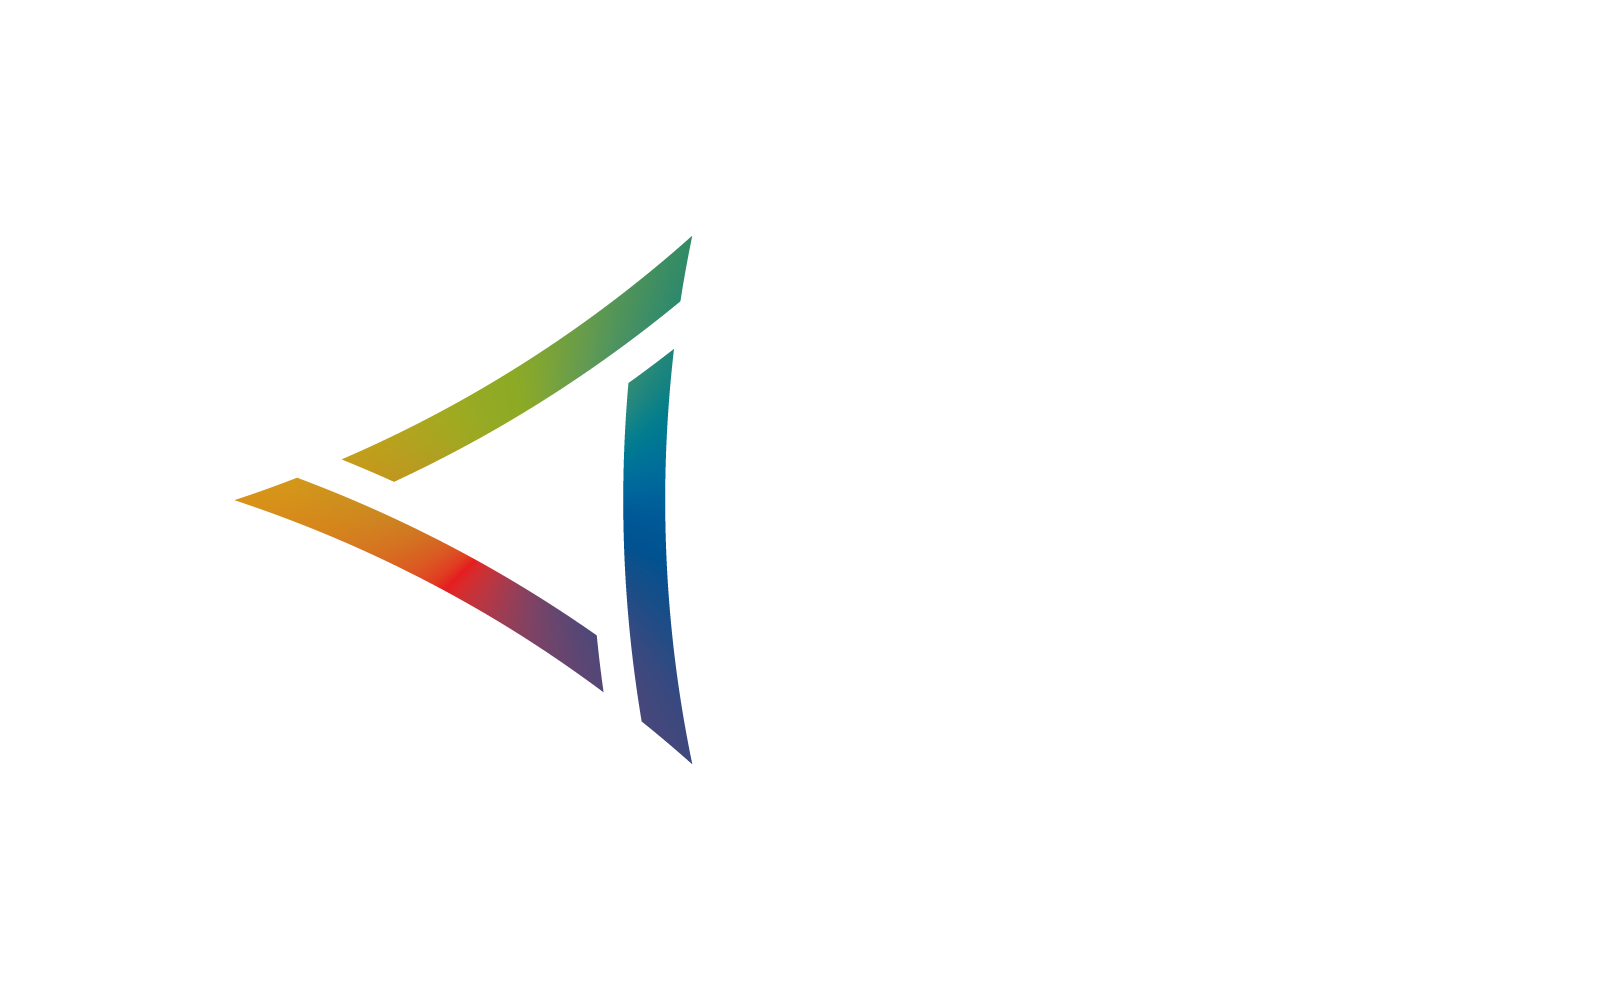 LTM Events GbR